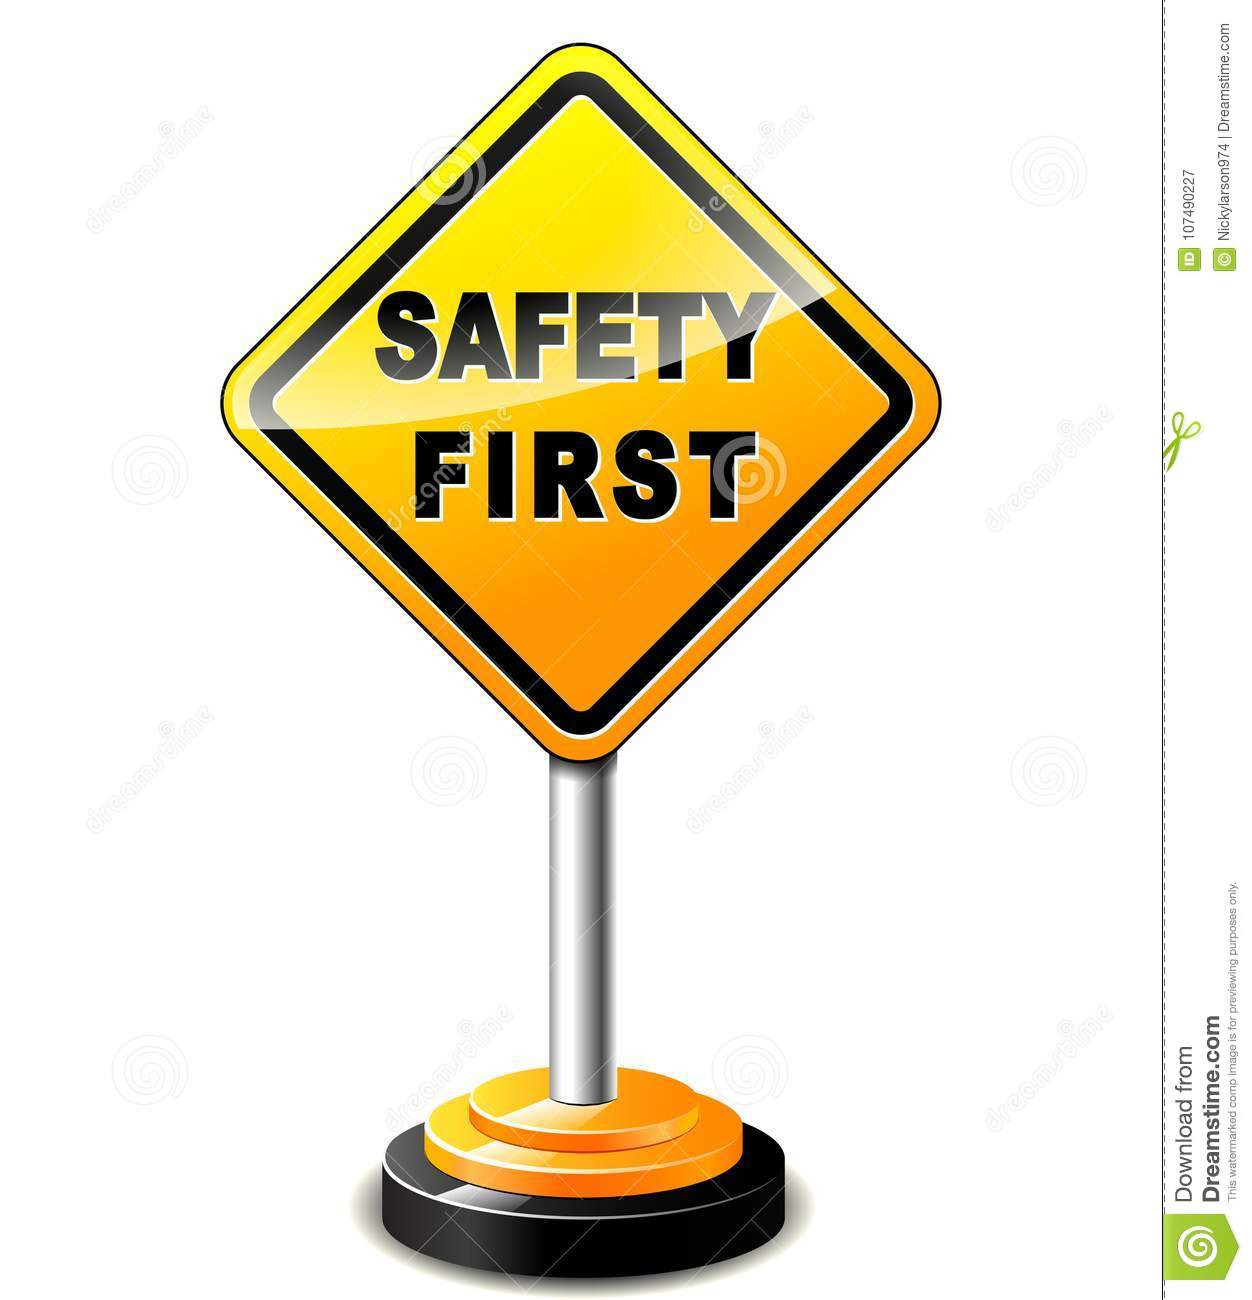 Safety First Sign Stock Vector Illustration Of Vector 107490227